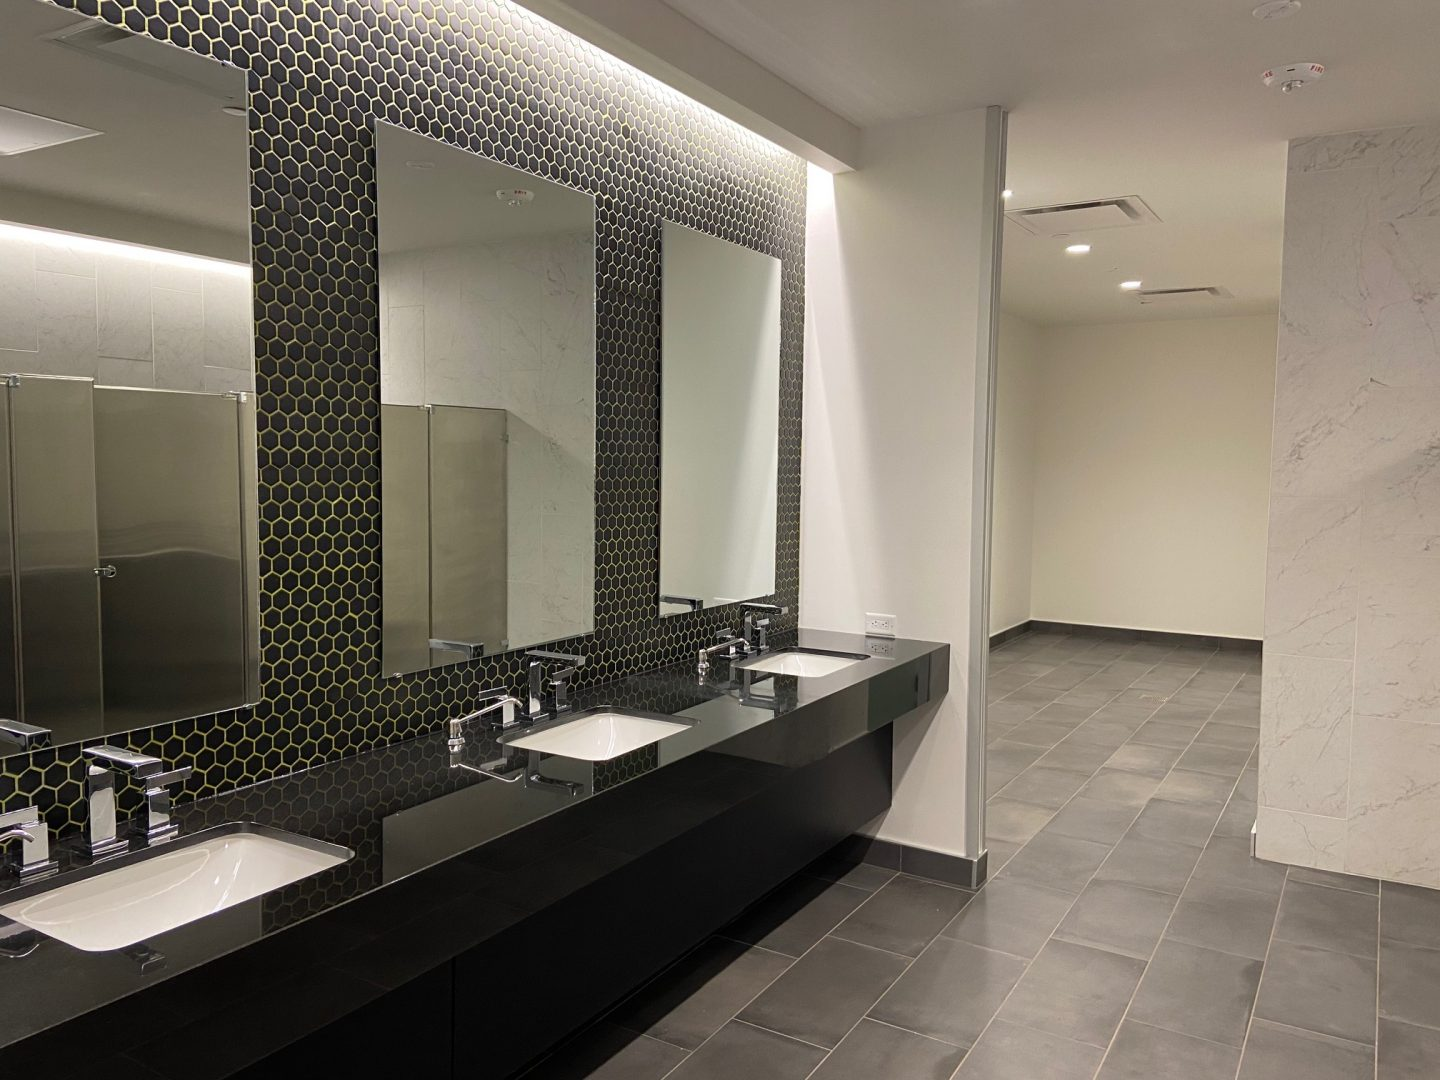 Houston Architecture Building Repositioning 1415 LOUISIANA FITNESS CENTER Houston Corporate Interior Design Locker Room Restroom